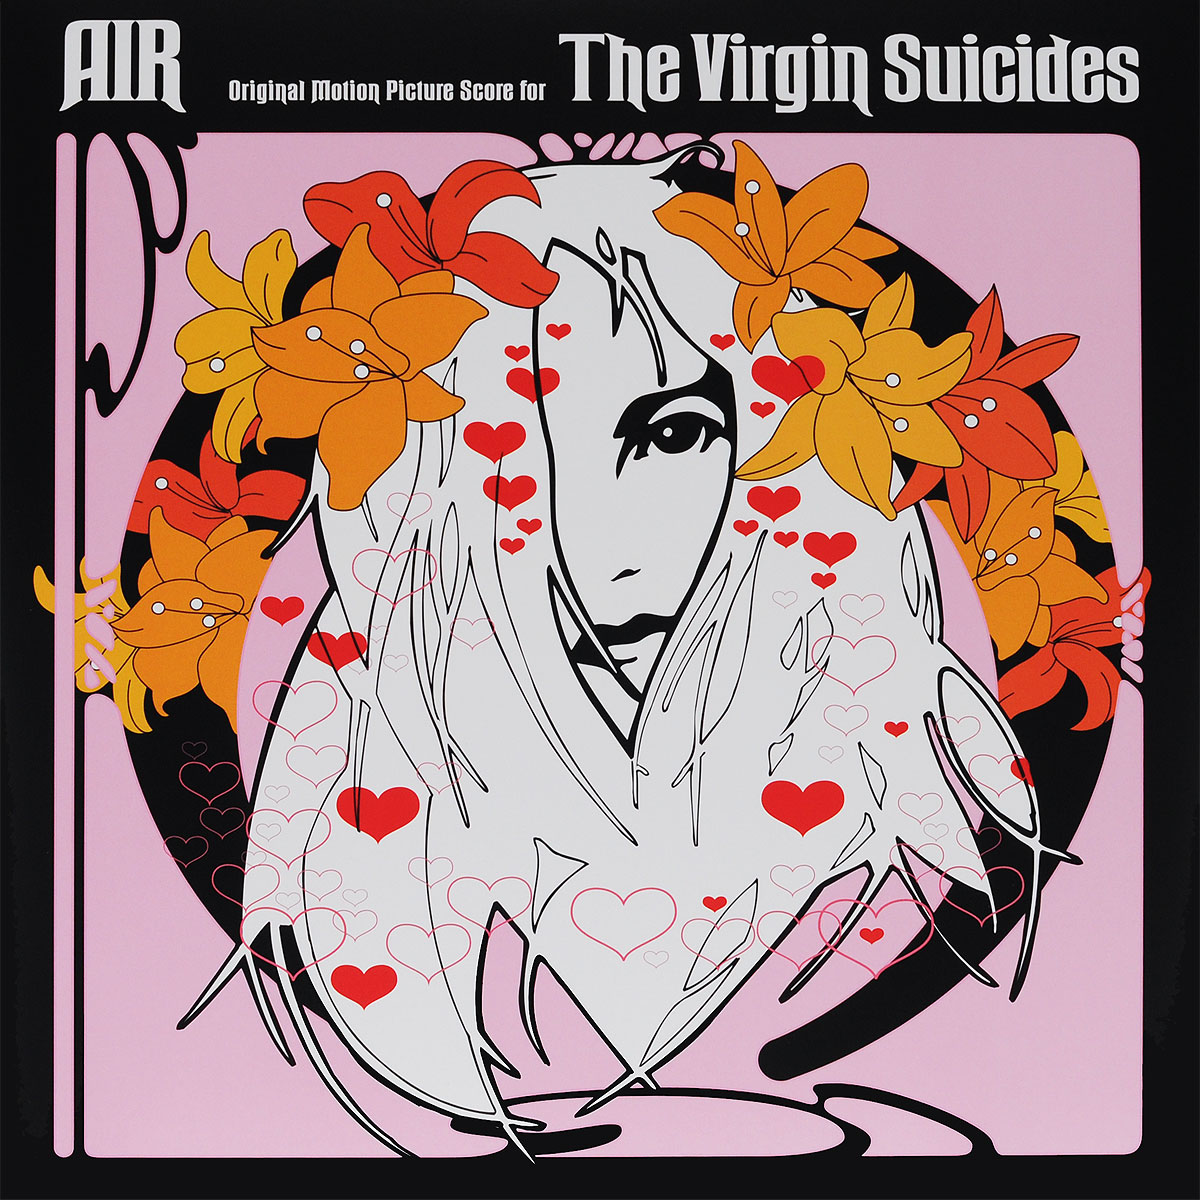 Air Air. The Virgin Suicides. Original Motion Picture Score (LP) techlink air ai110wc